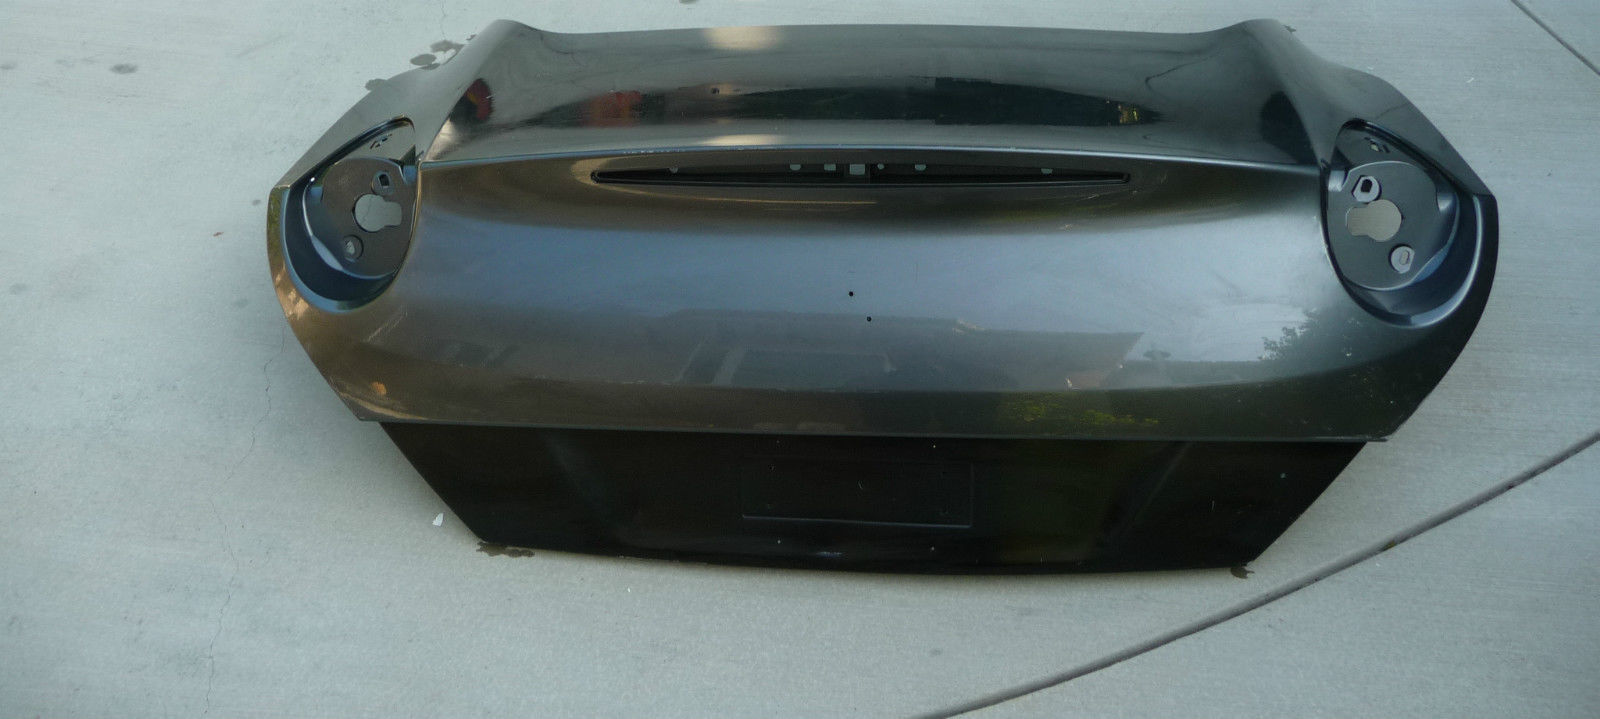 2009 2010 2011 2012 2013 2014 Ferrari California (09) Rear Hood Bonnet Luggage Lid Lift Gate 69803810  - Used Auto Parts Store | LA Global Parts